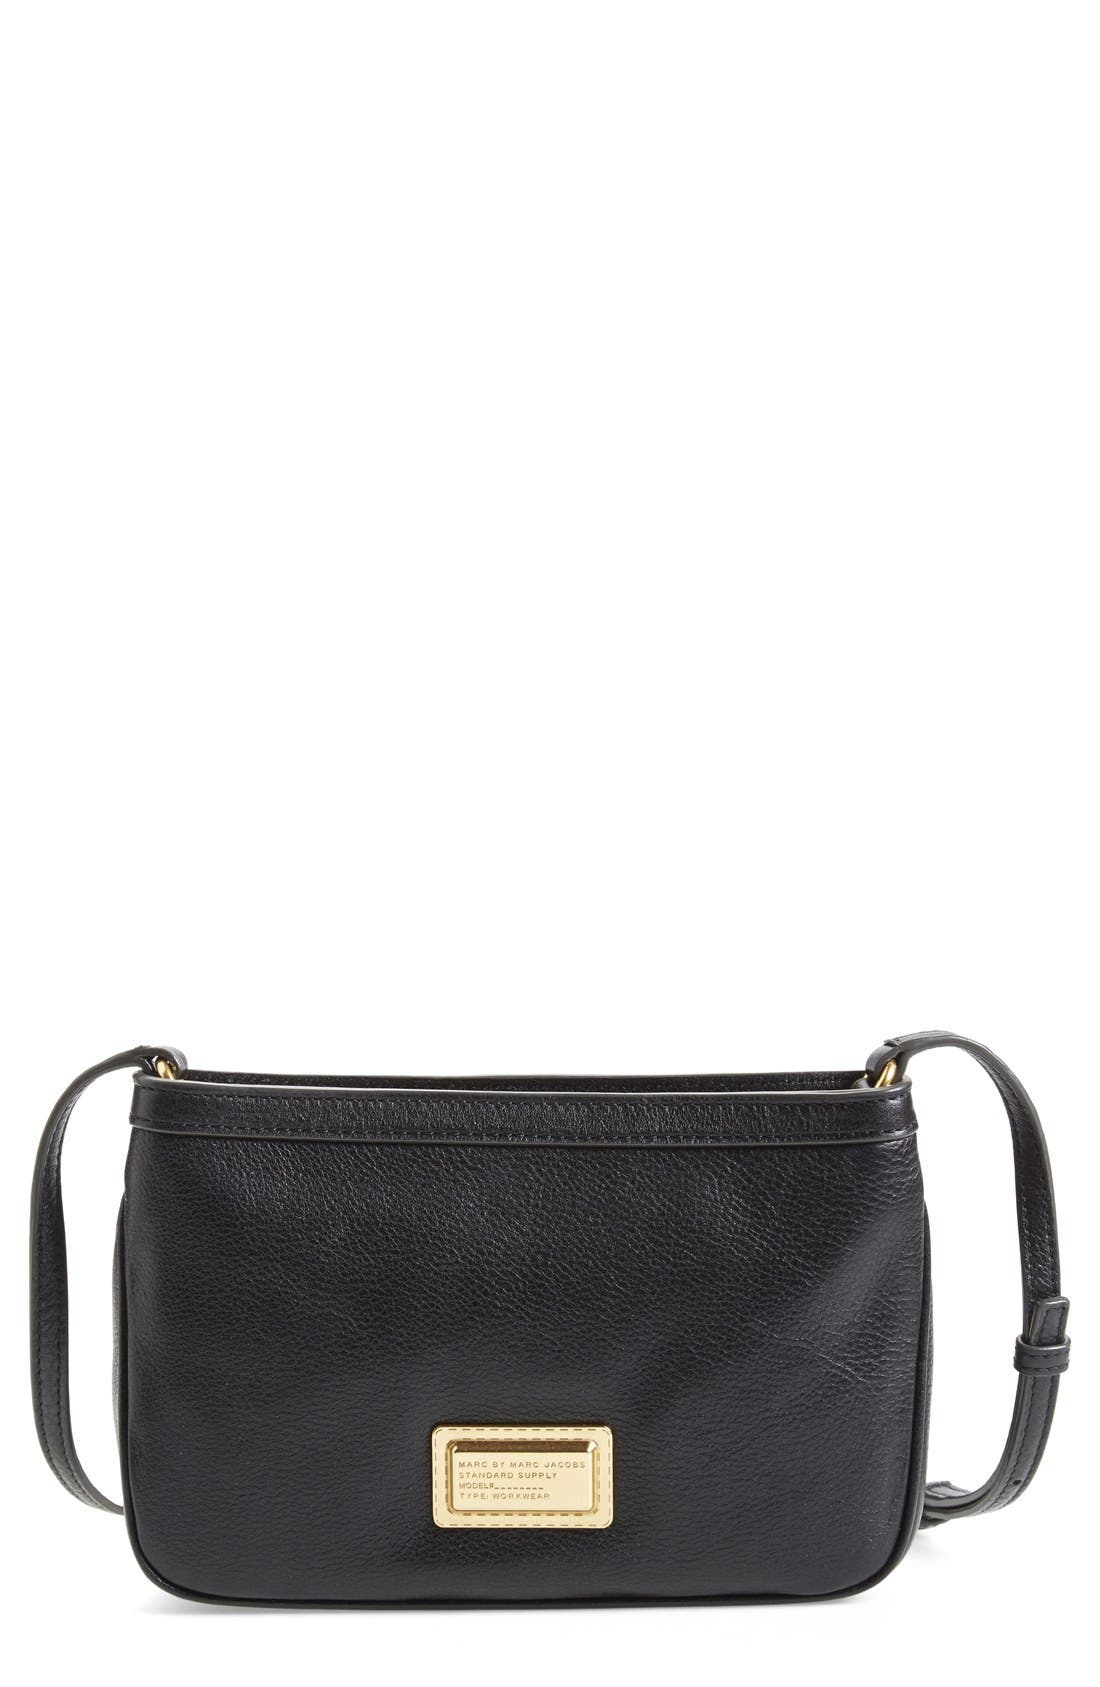 MARC BY MARC JACOBS 'Take Your Marc - Percy' Crossbody Bag,                         Main,                         color,